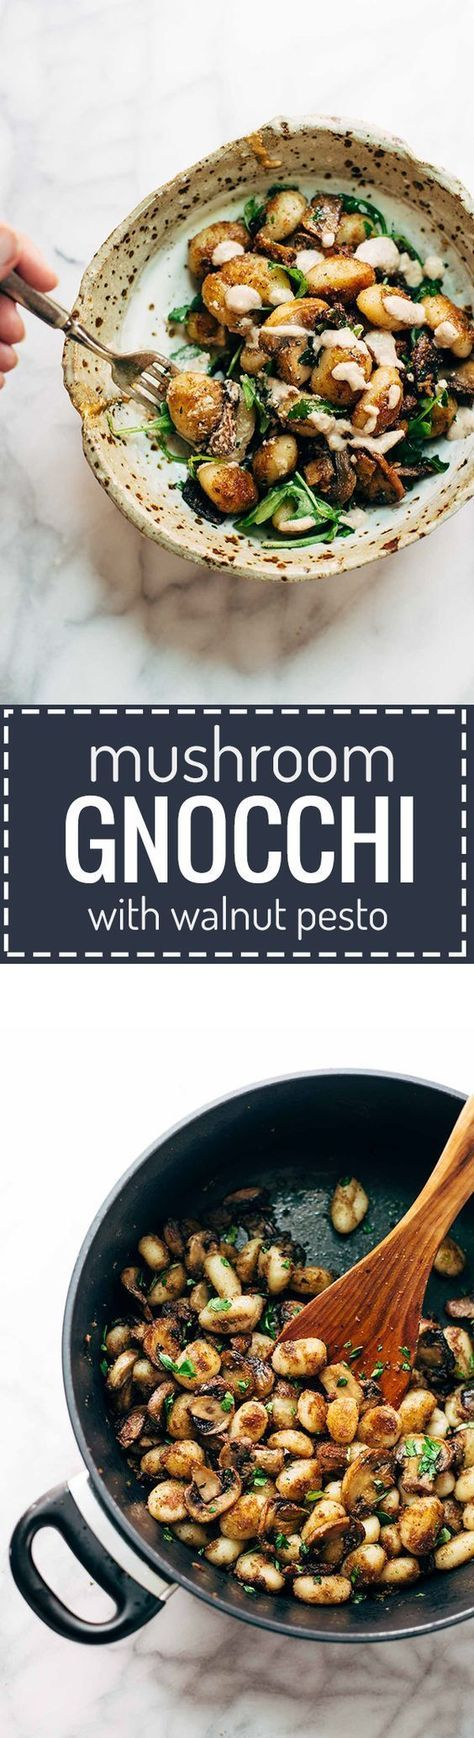 Mushroom Gnocchi with Walnut Pesto and Arugula - a rustic vegetarian recipe made with easy ingredients like Parmesan cheese, garlic, olive oil, arugula, mushrooms, and DeLallo potato gnocchi. Comes together in 30 minutes or less! ♡   pinchofyum.com